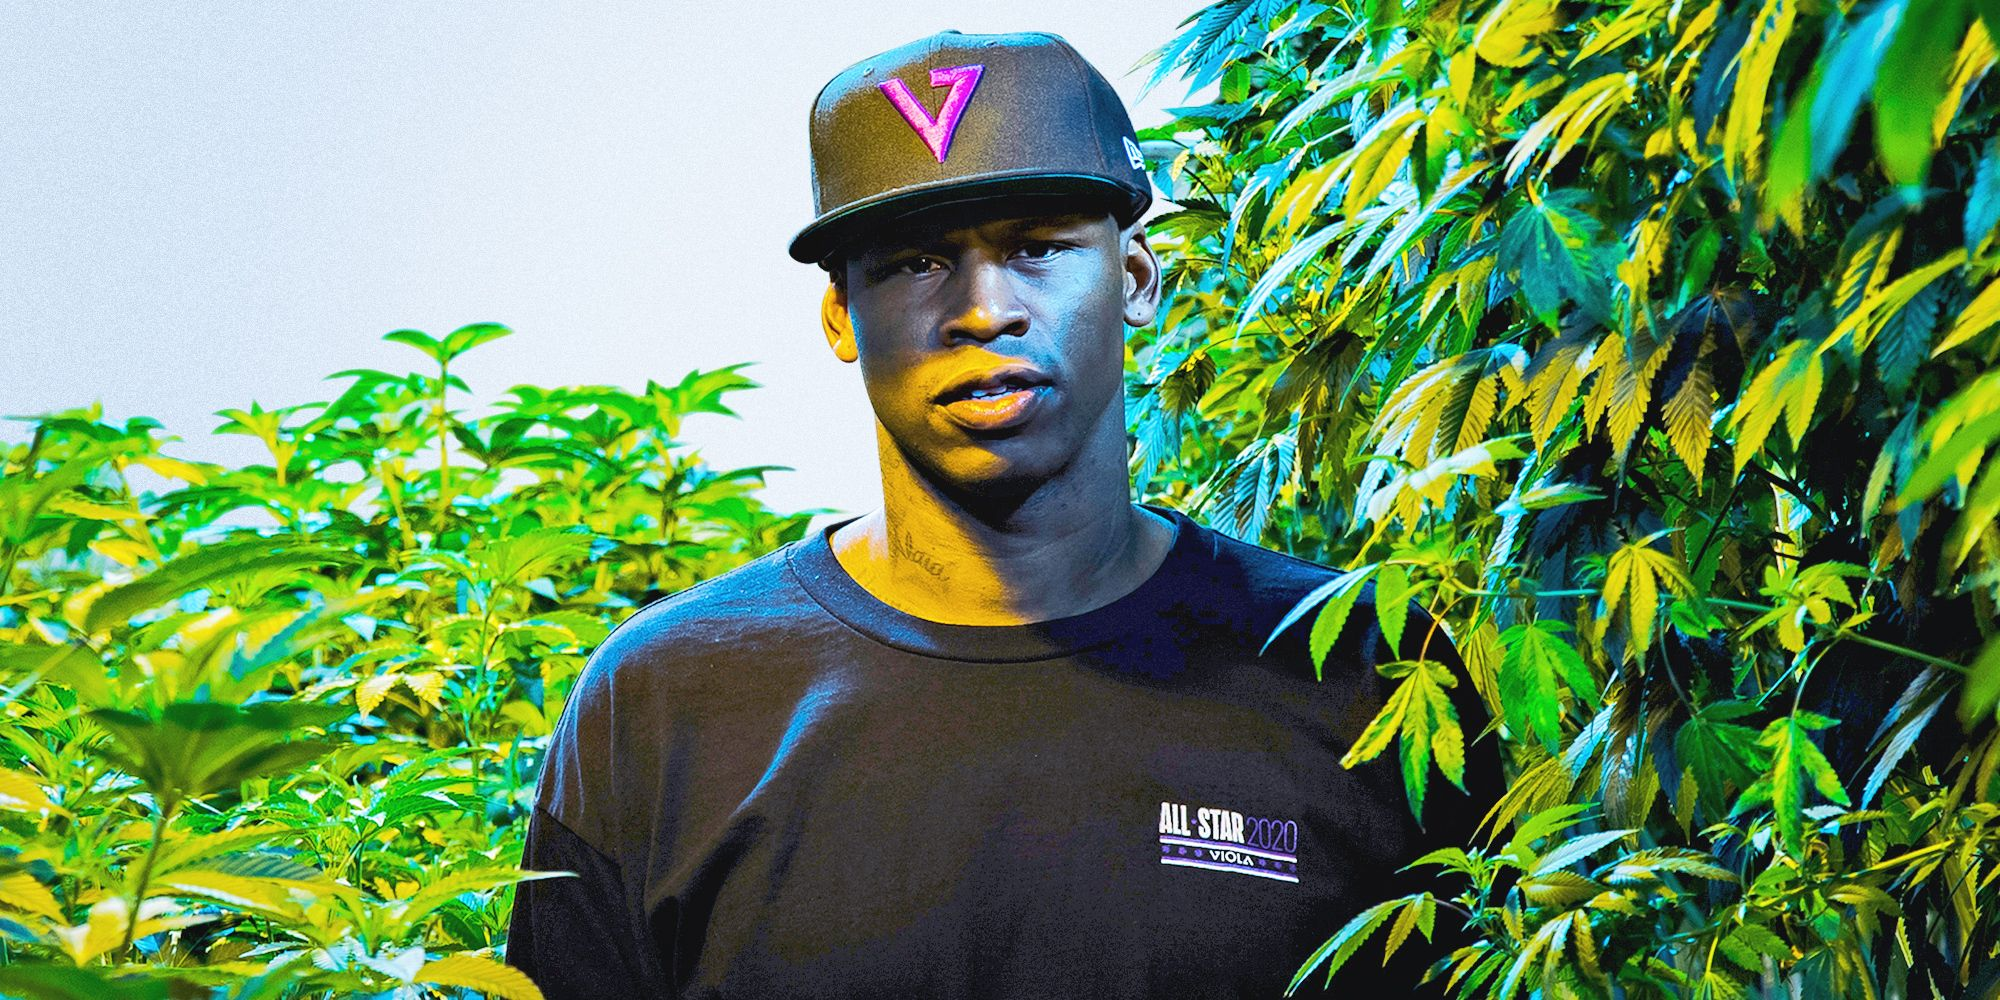 Al Harrington Wants Legal Weed as Much as You Do. But That's Not the Finish Line.